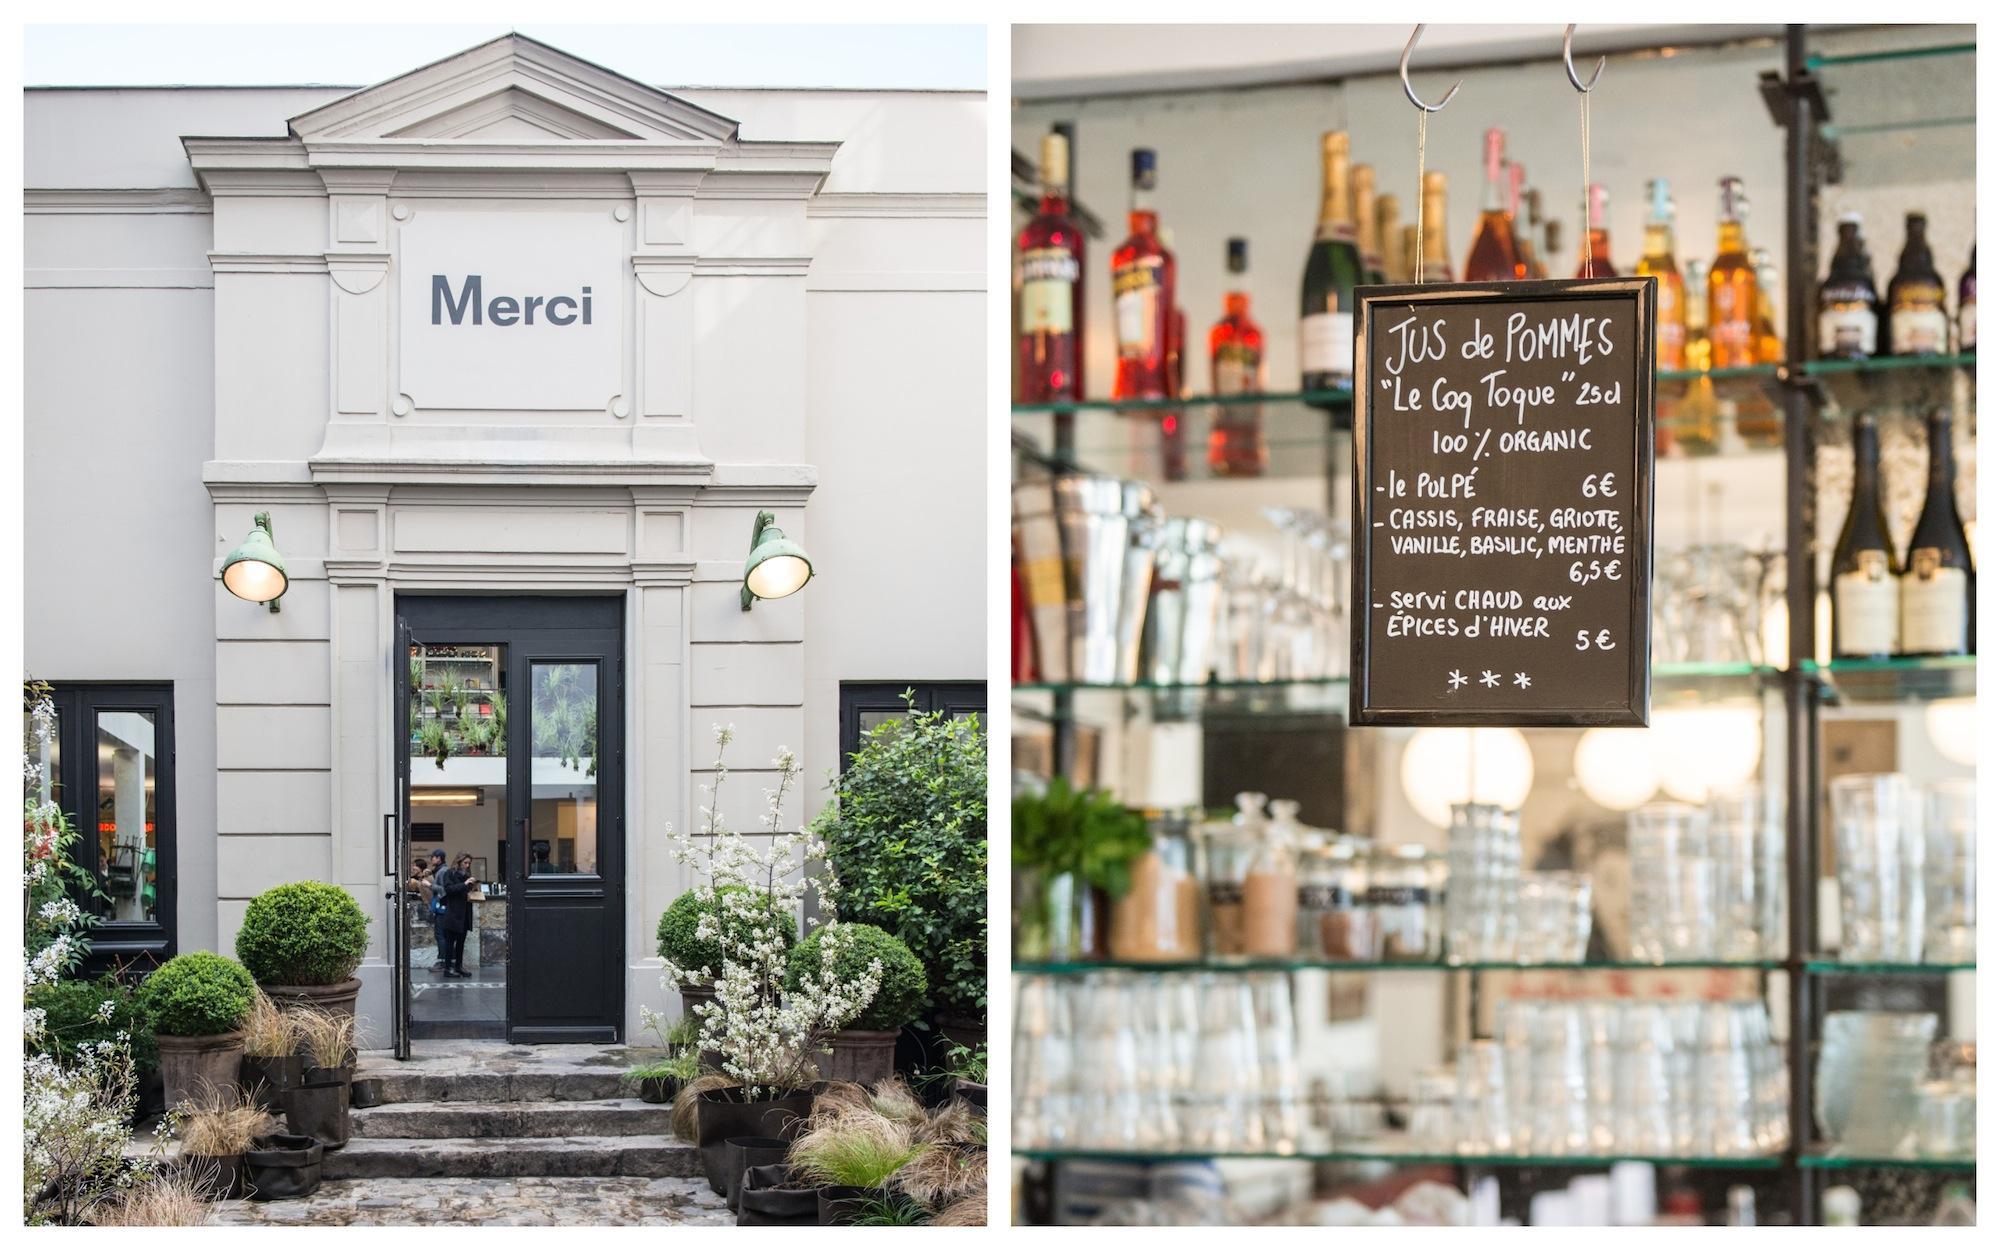 HiP Paris Blog rounds up Paris' best concept store cafes like at Merci in the Marais, with its stone exterior, hidden in a courtyard (left) and its fresh juices from the cafe (right).